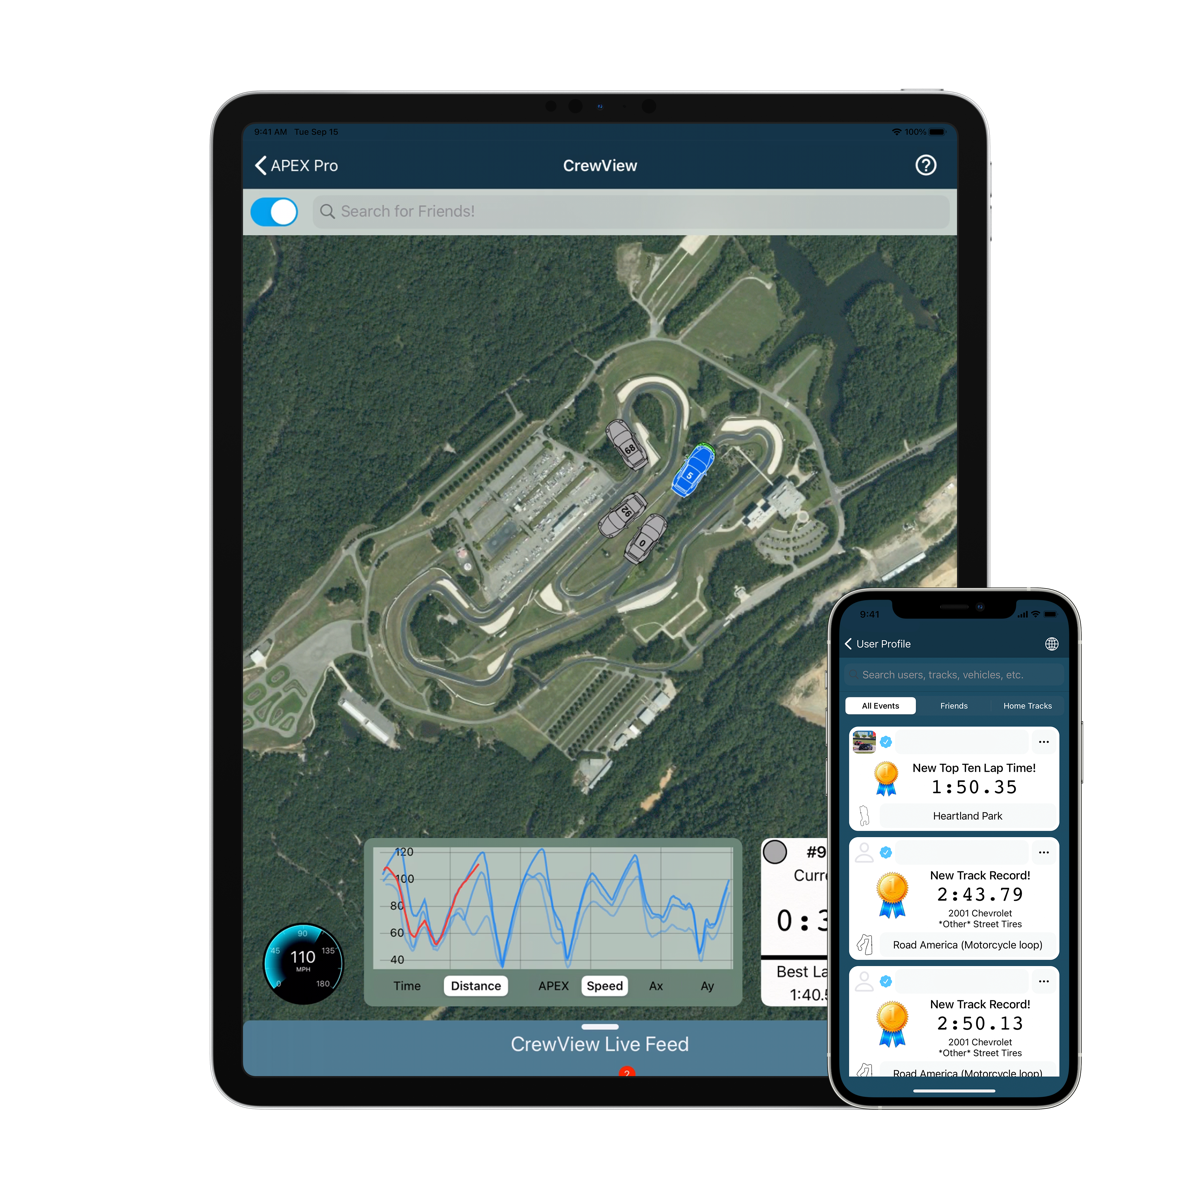 apex driving coach social and crewview features